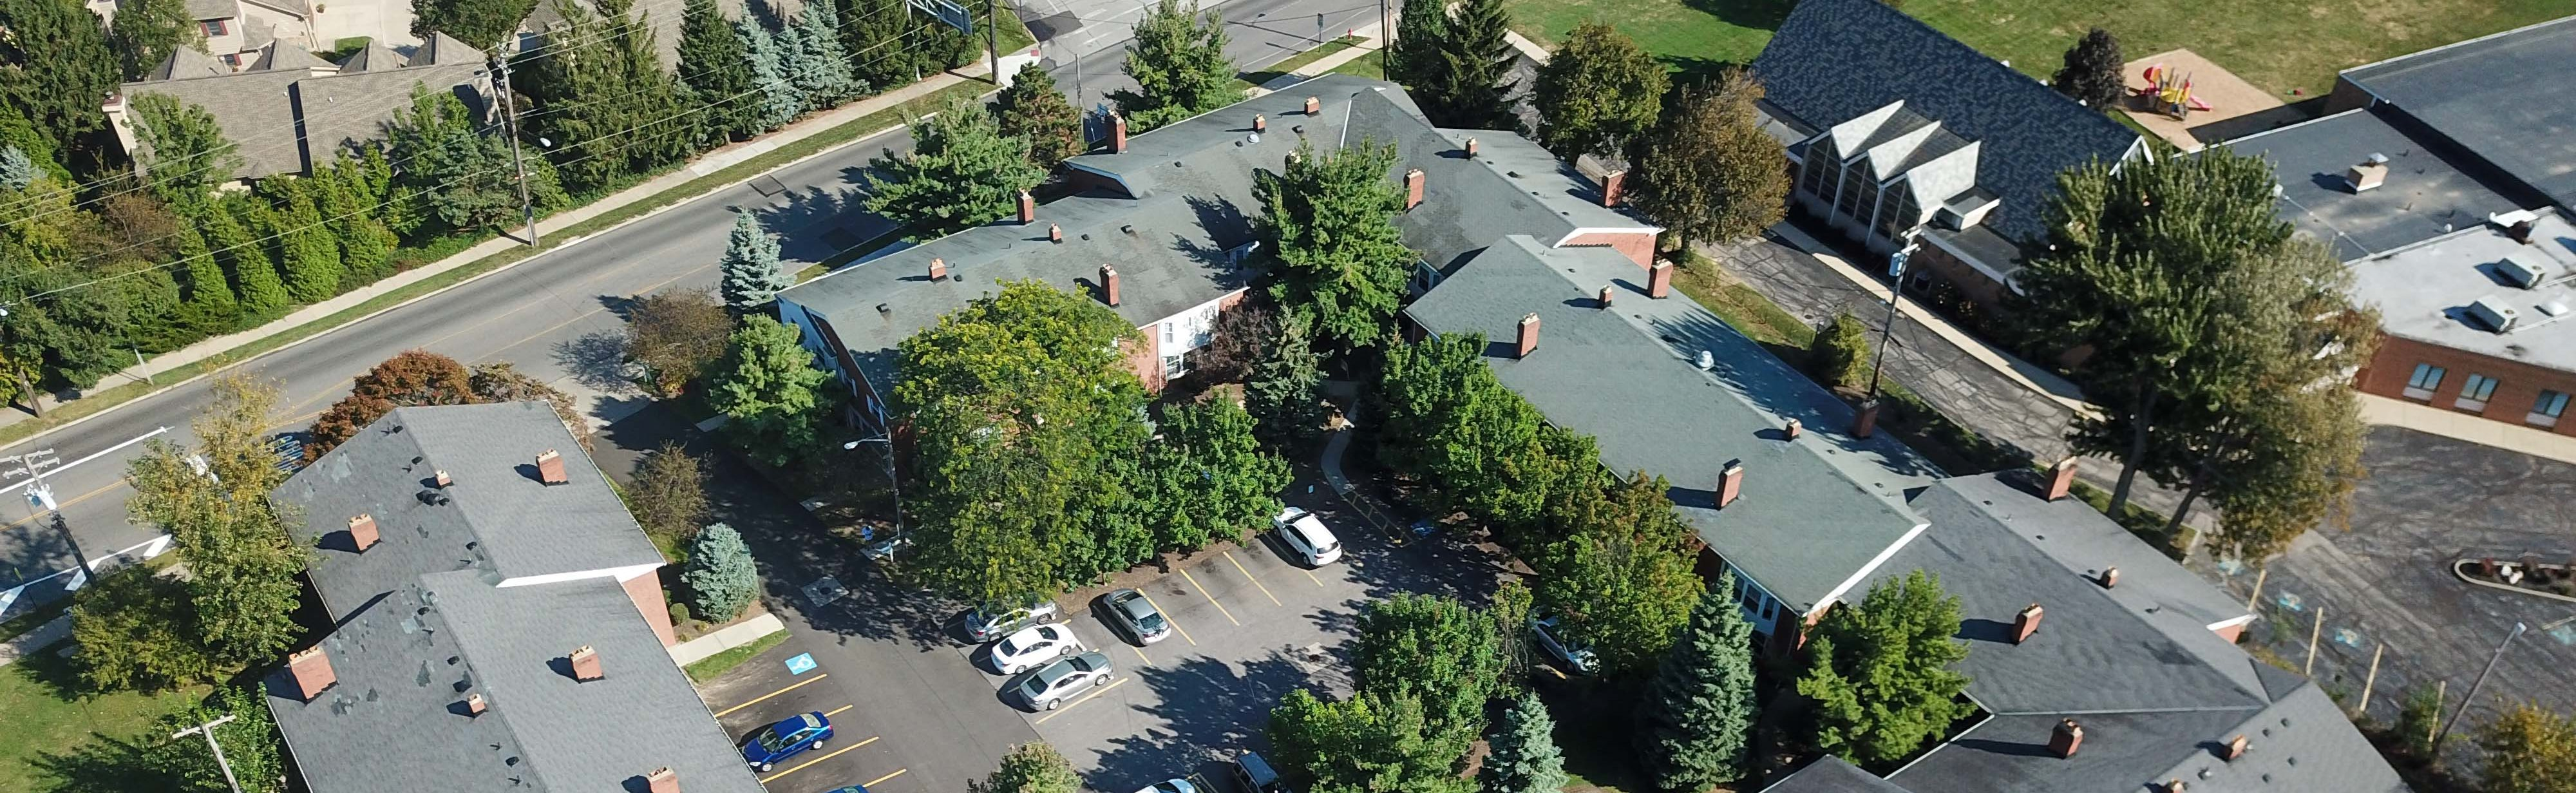 Oxford Court Aerial Photo